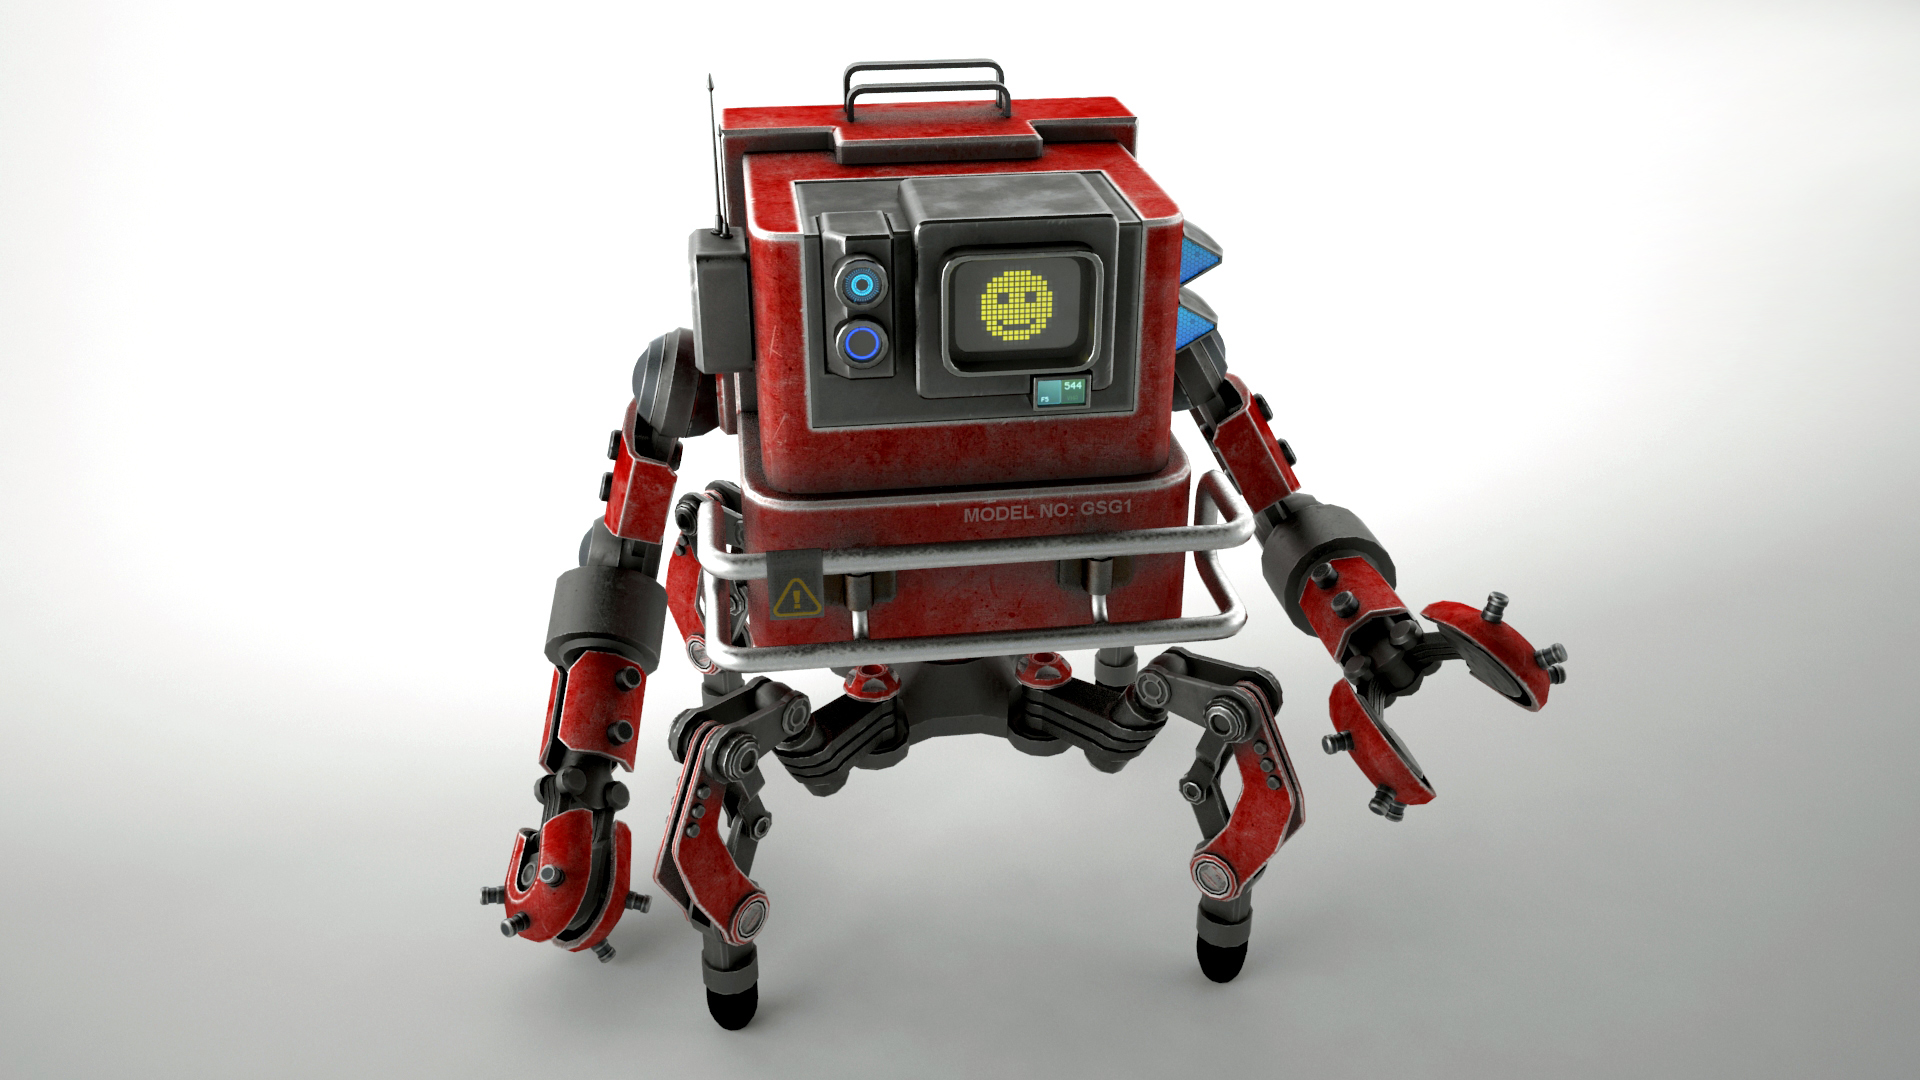 robot gsg1 3d model 3ds max fbx obj 267411